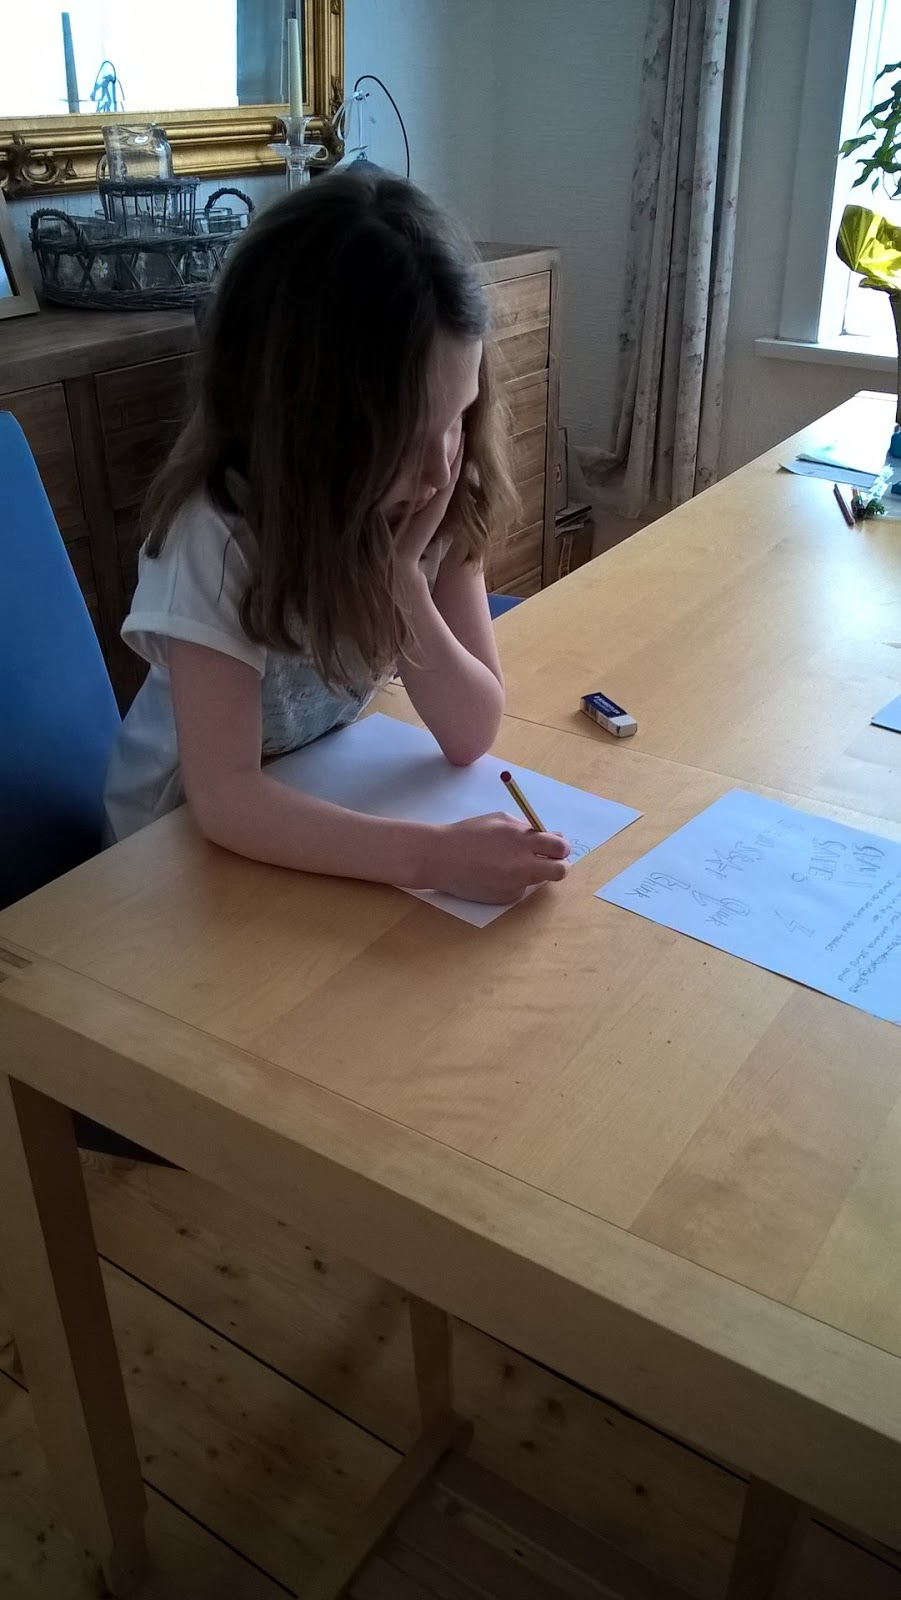 Caitlin designing her poster for the Accident Advice Helpline competition - motherdistracted.co.uk